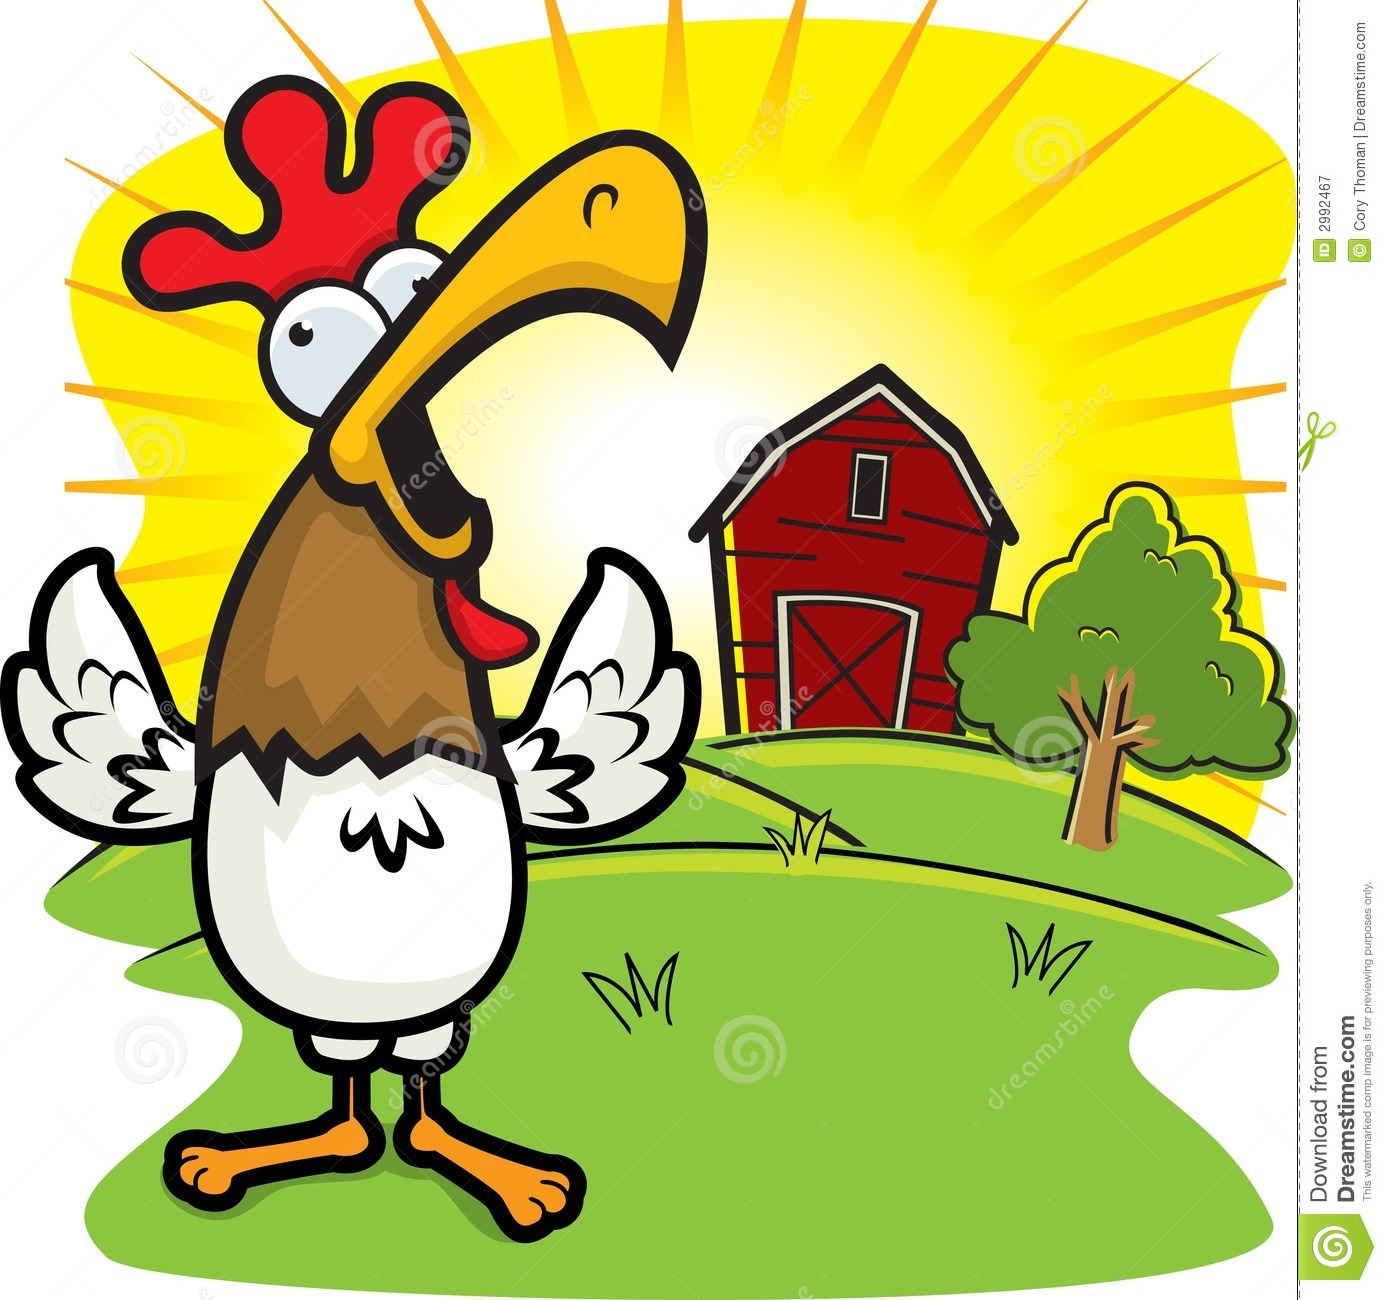 Morning clip art vector morning graphics image. Rooster Crowing Royalty Free Stock Photography Image 2992467